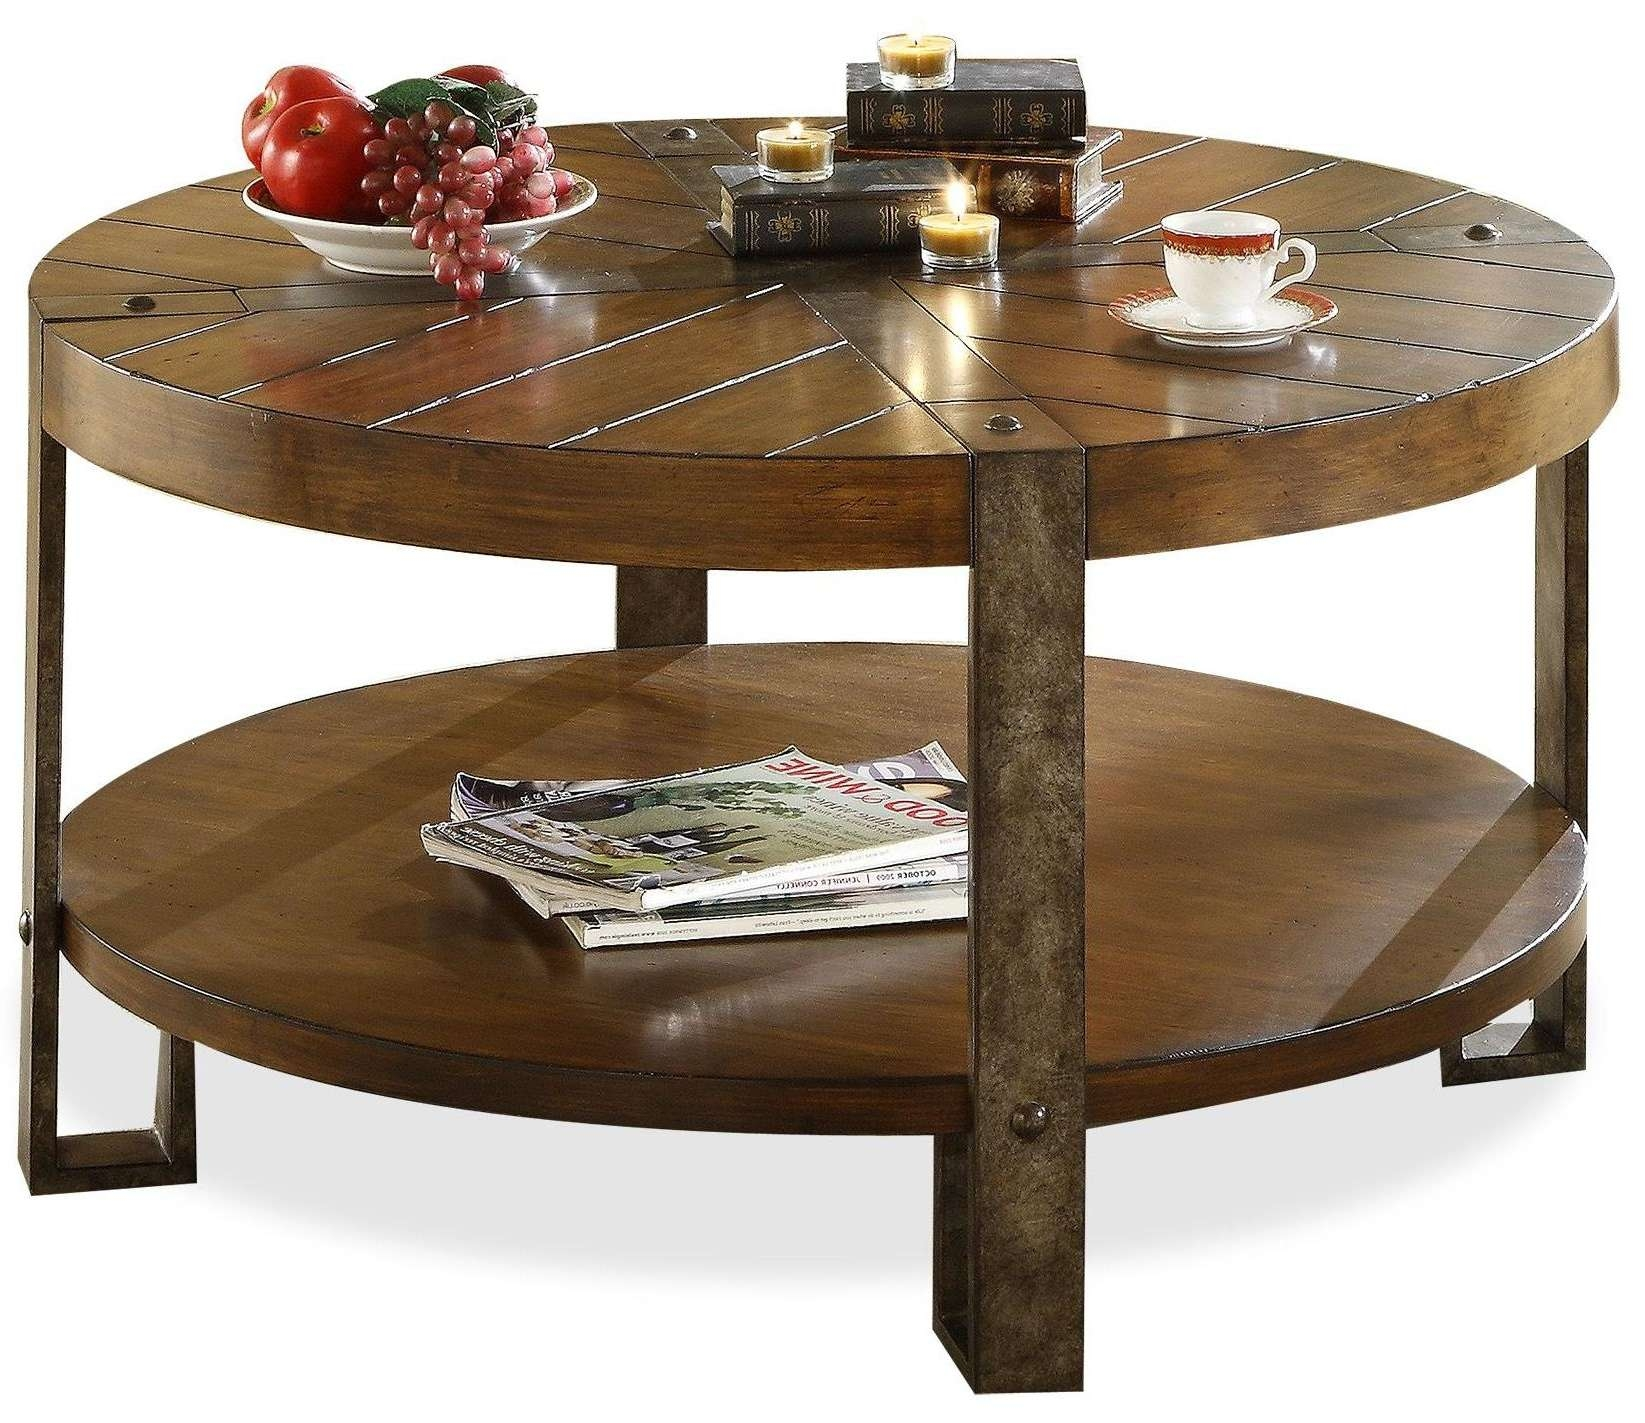 Coffee Tables : Industrial Round Coffee Table Large Square Modern Inside Best And Newest Industrial Round Coffee Tables (View 16 of 20)